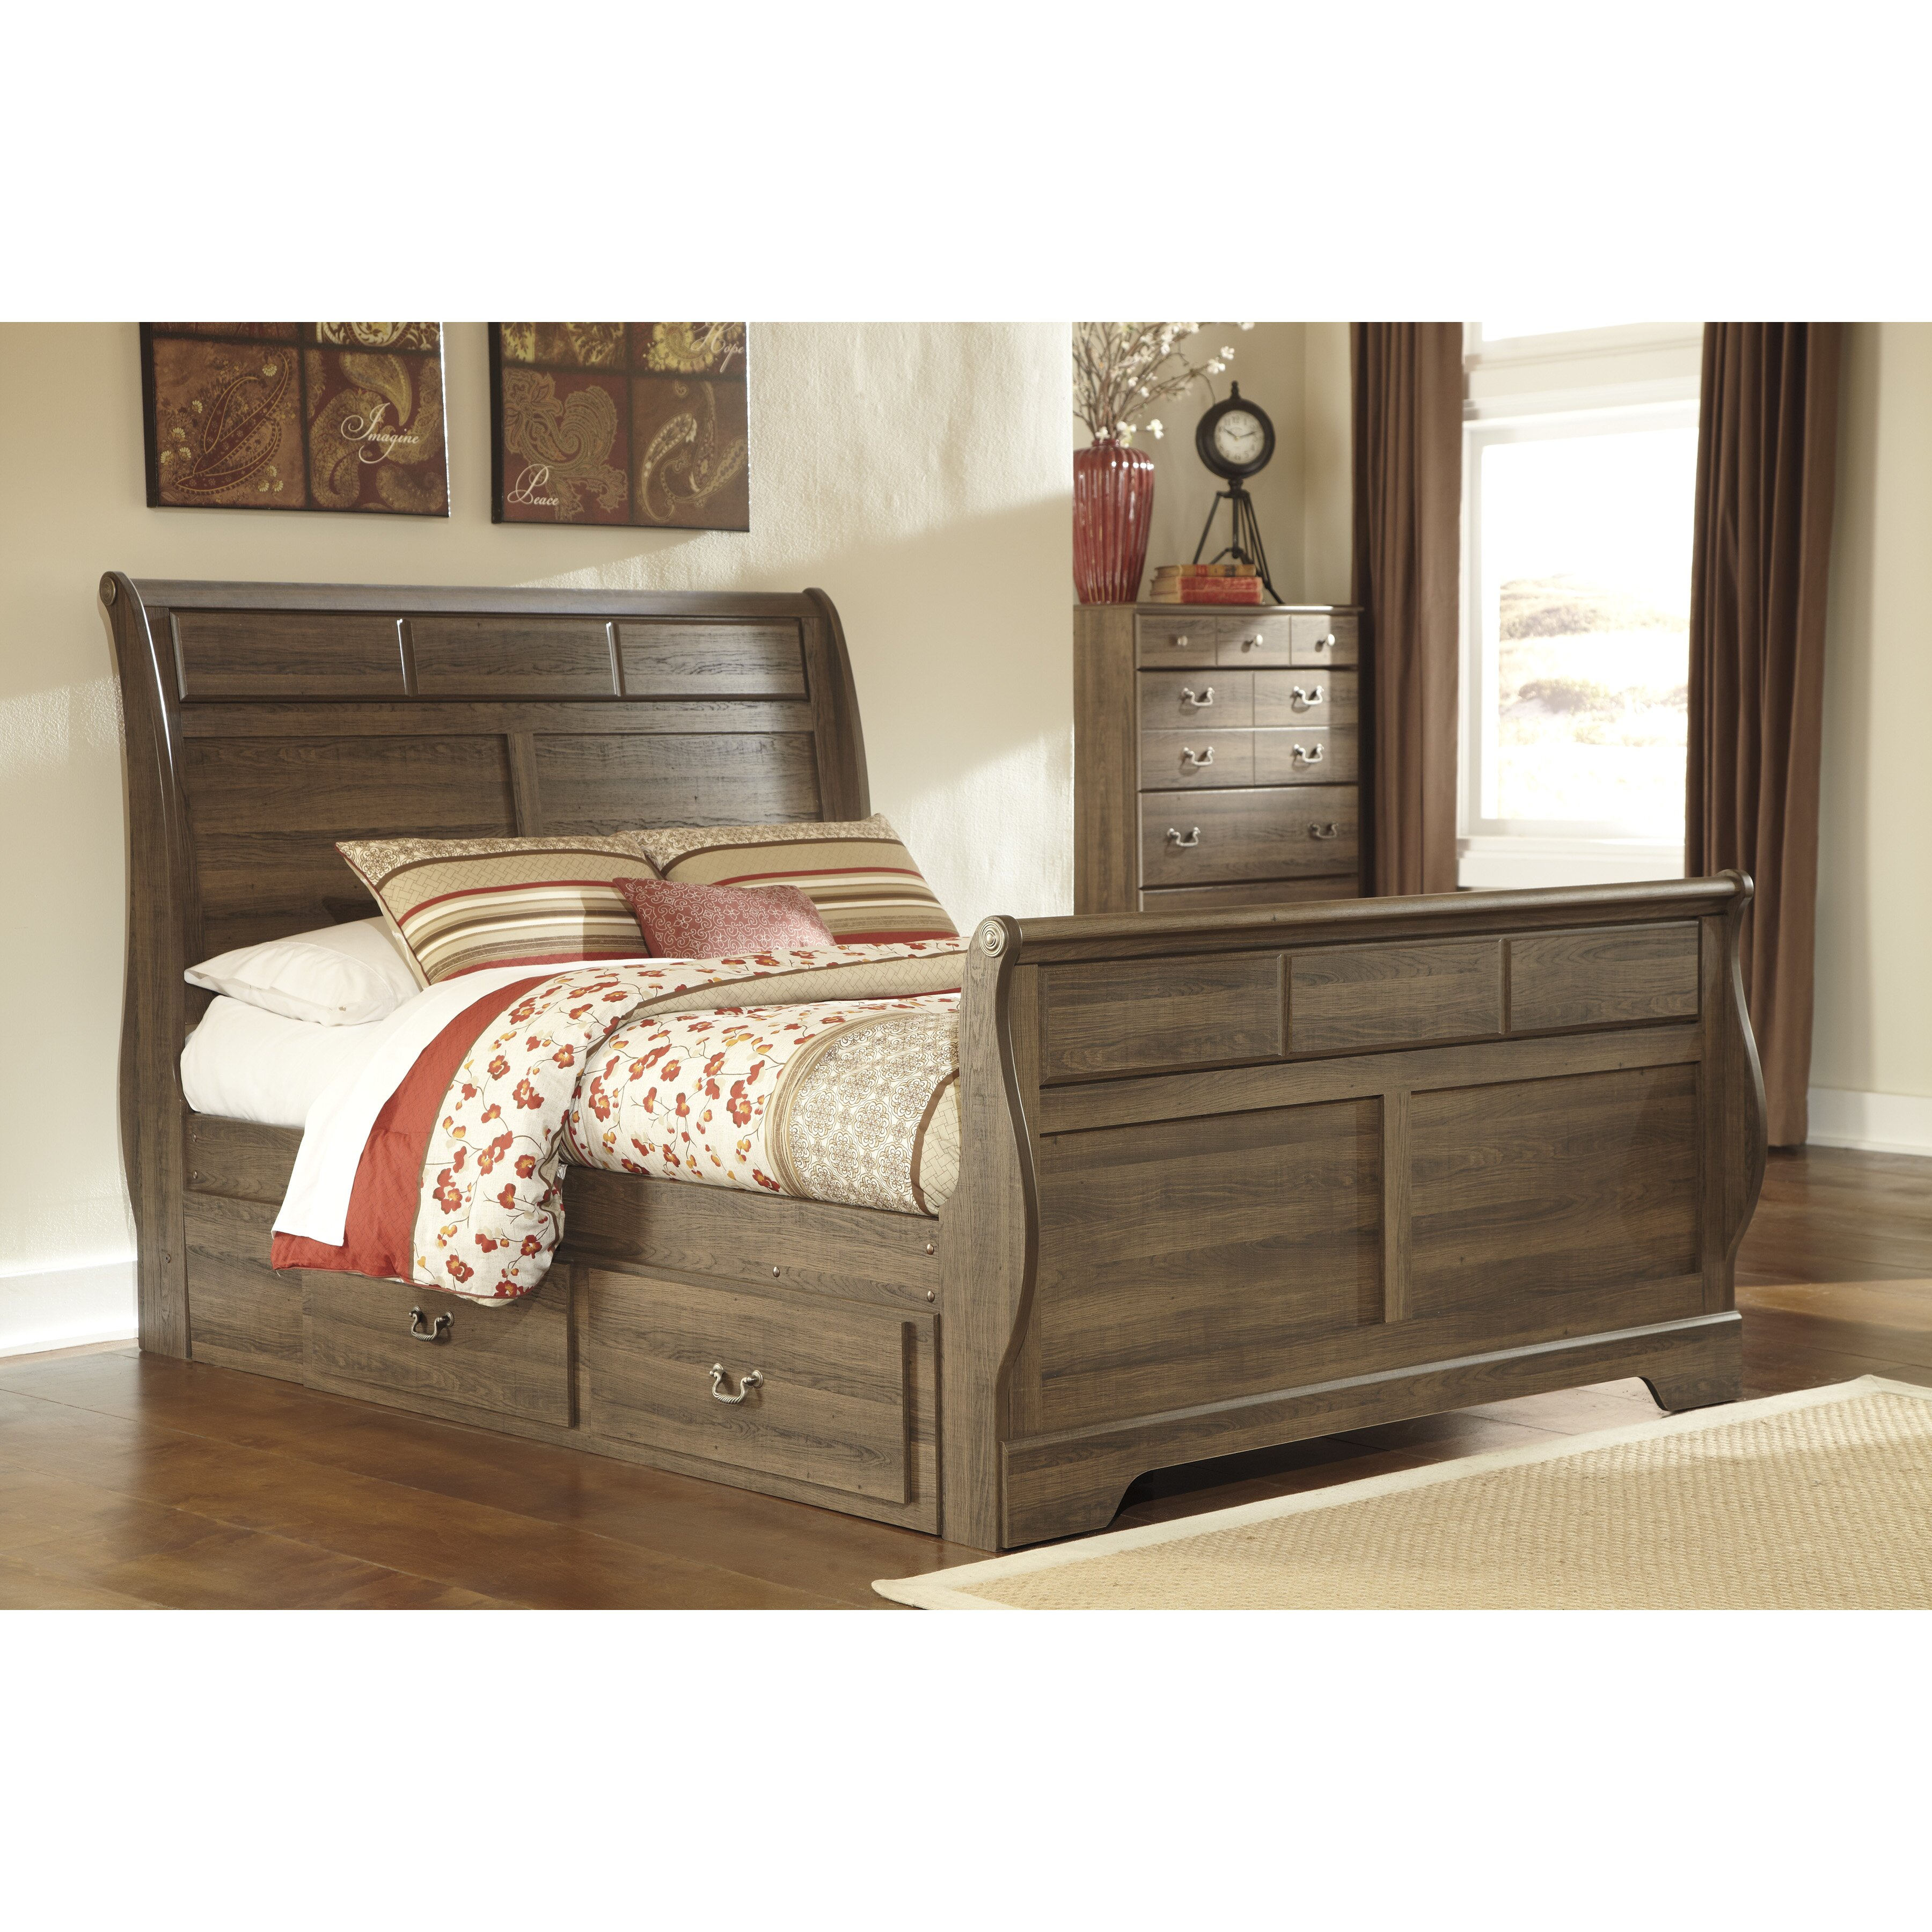 Signature Design By Ashley Allymore Sleigh Customizable Bedroom Set Reviews